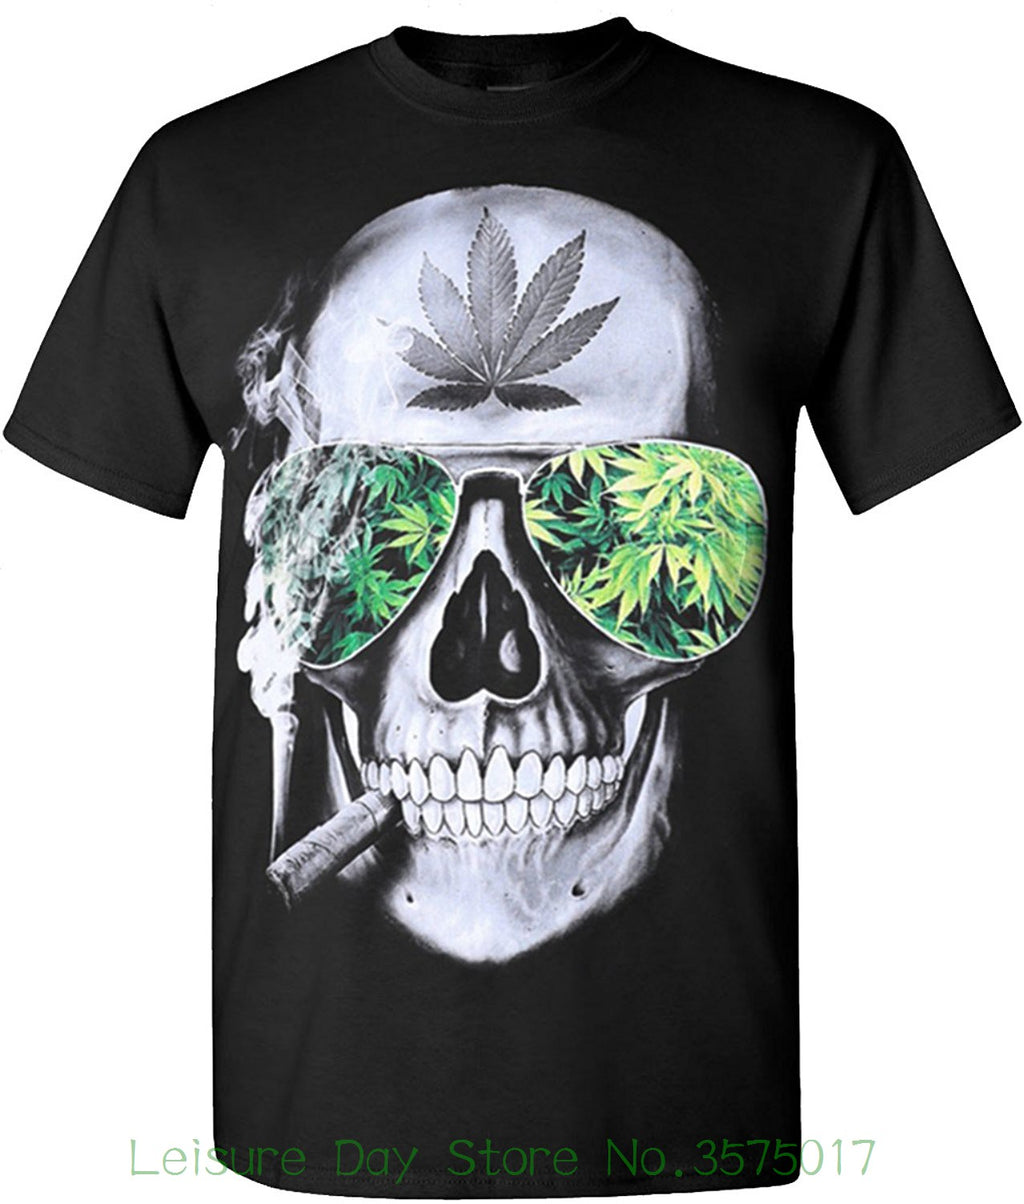 Short Sleeves Cotton Fashion T Shirt Free Shipping Skull Weed Blaze 420 Hip Hop Legend Rappers T Shirts